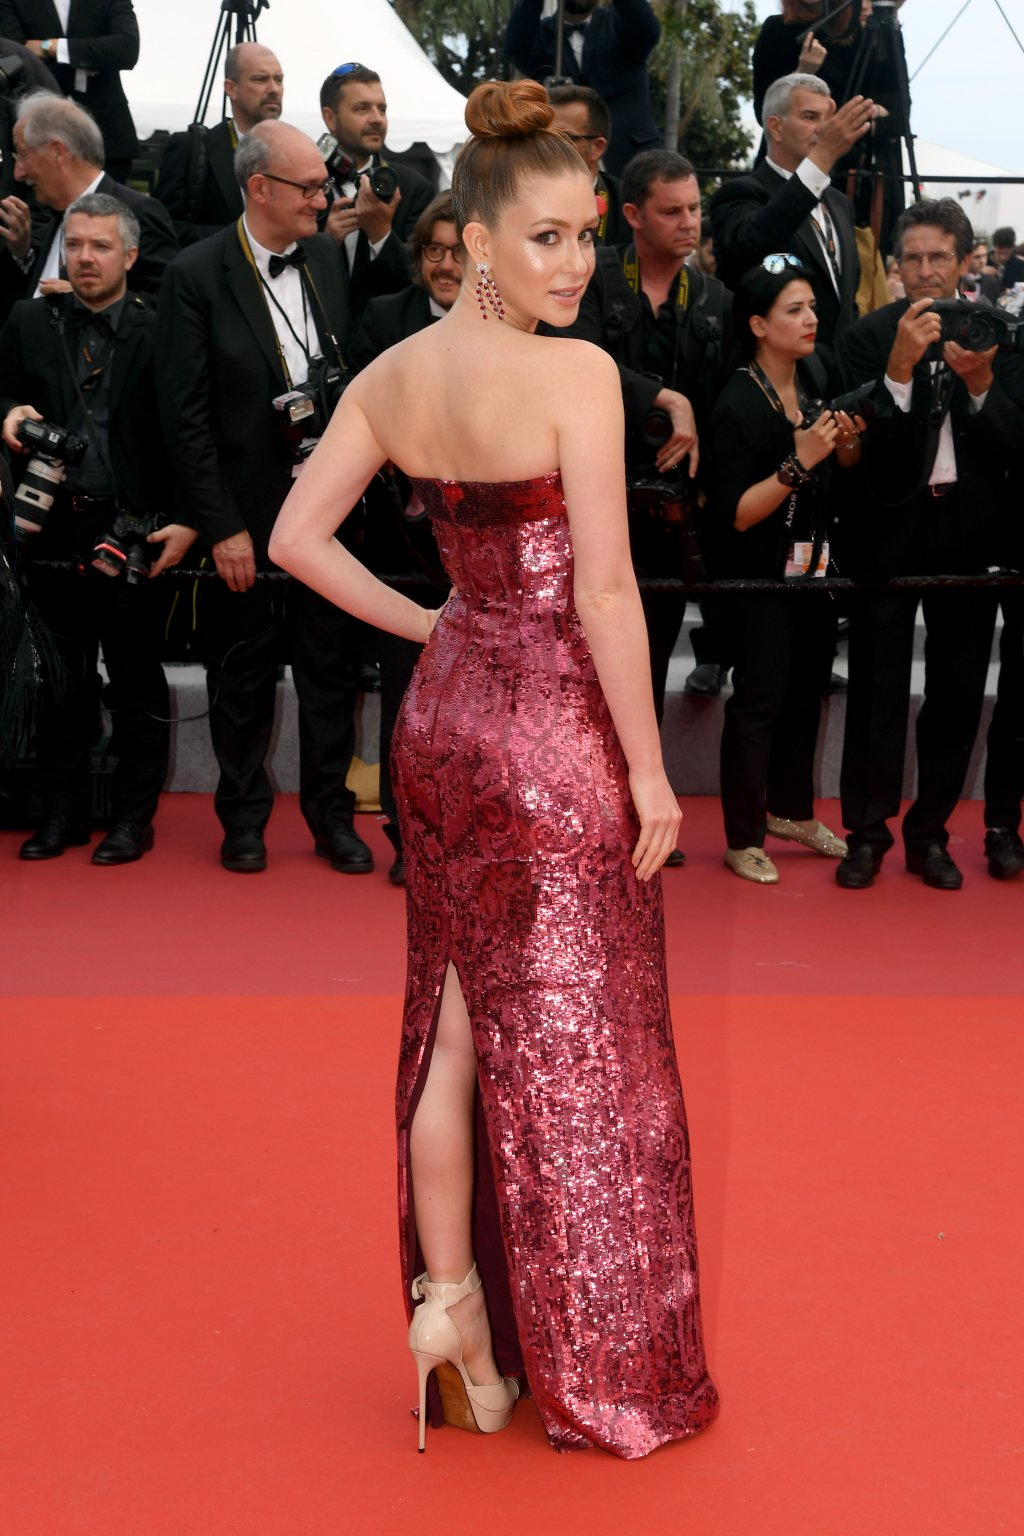 Marina Ruy Barbosa arrasando em Cannes. (Stephane Cardinale - Corbis/Getty Images)